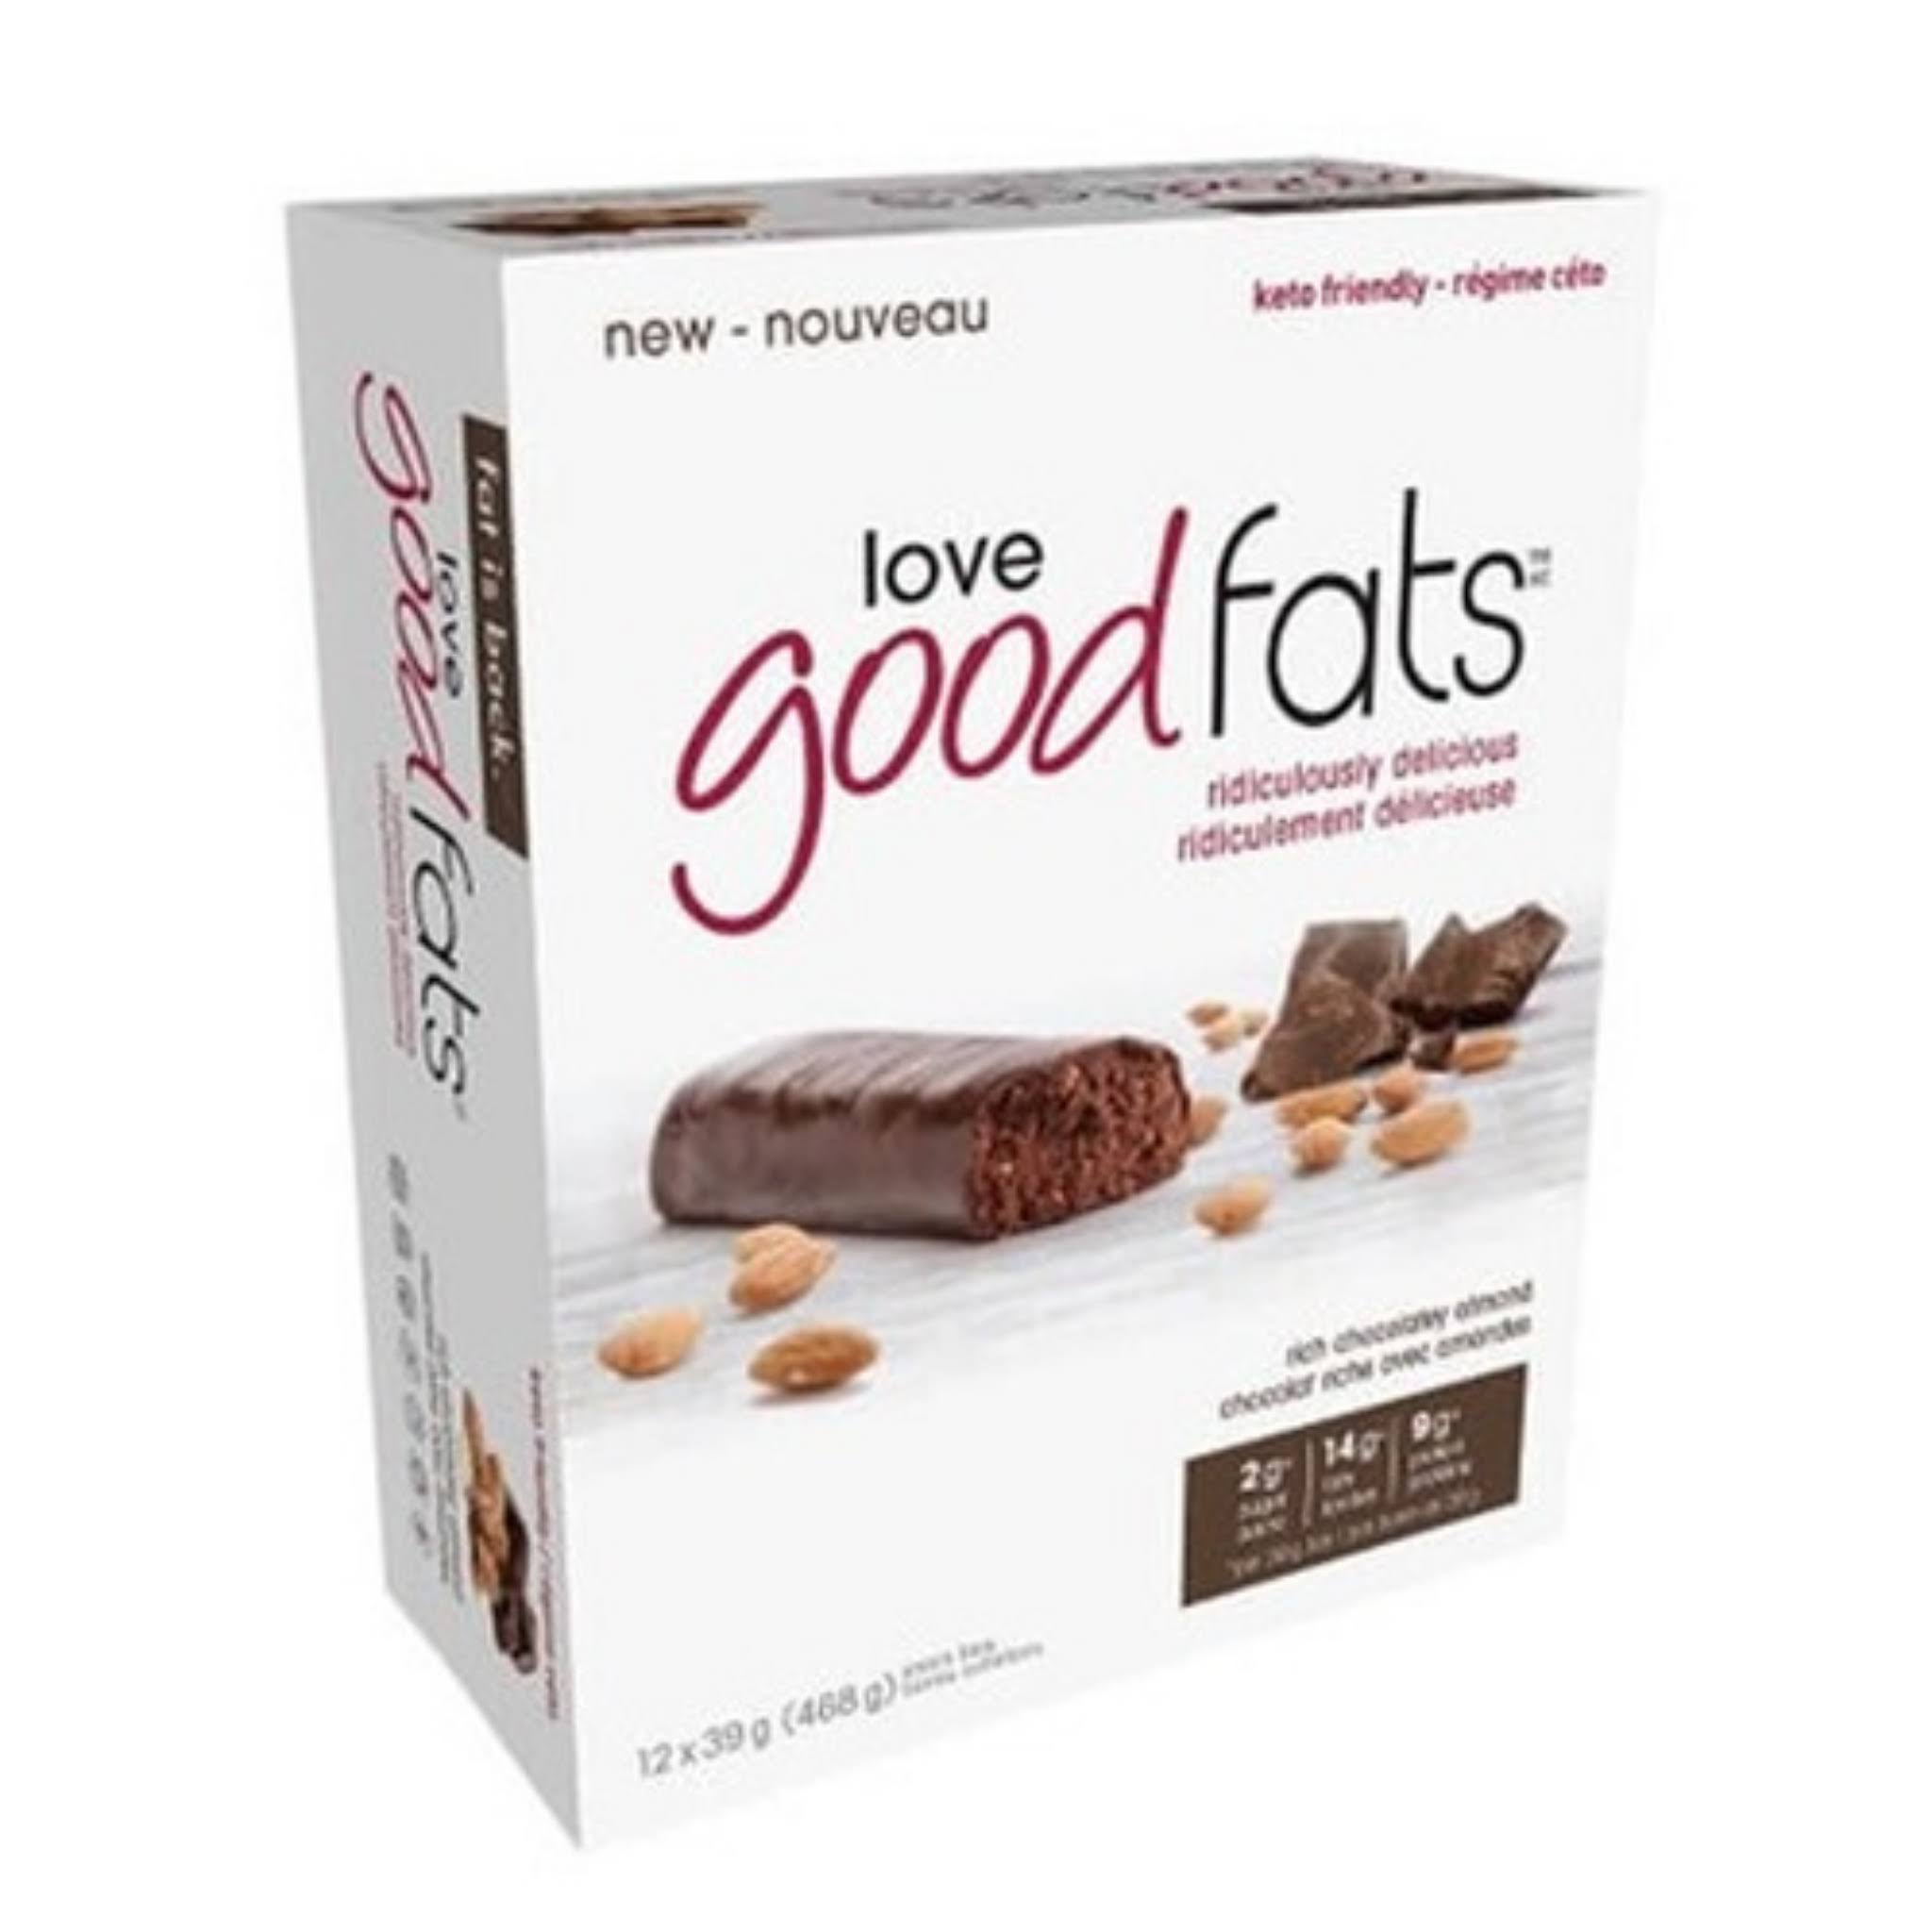 Love Good Fats Chocolate Almond Snack Bar 12ct, 39 Gr